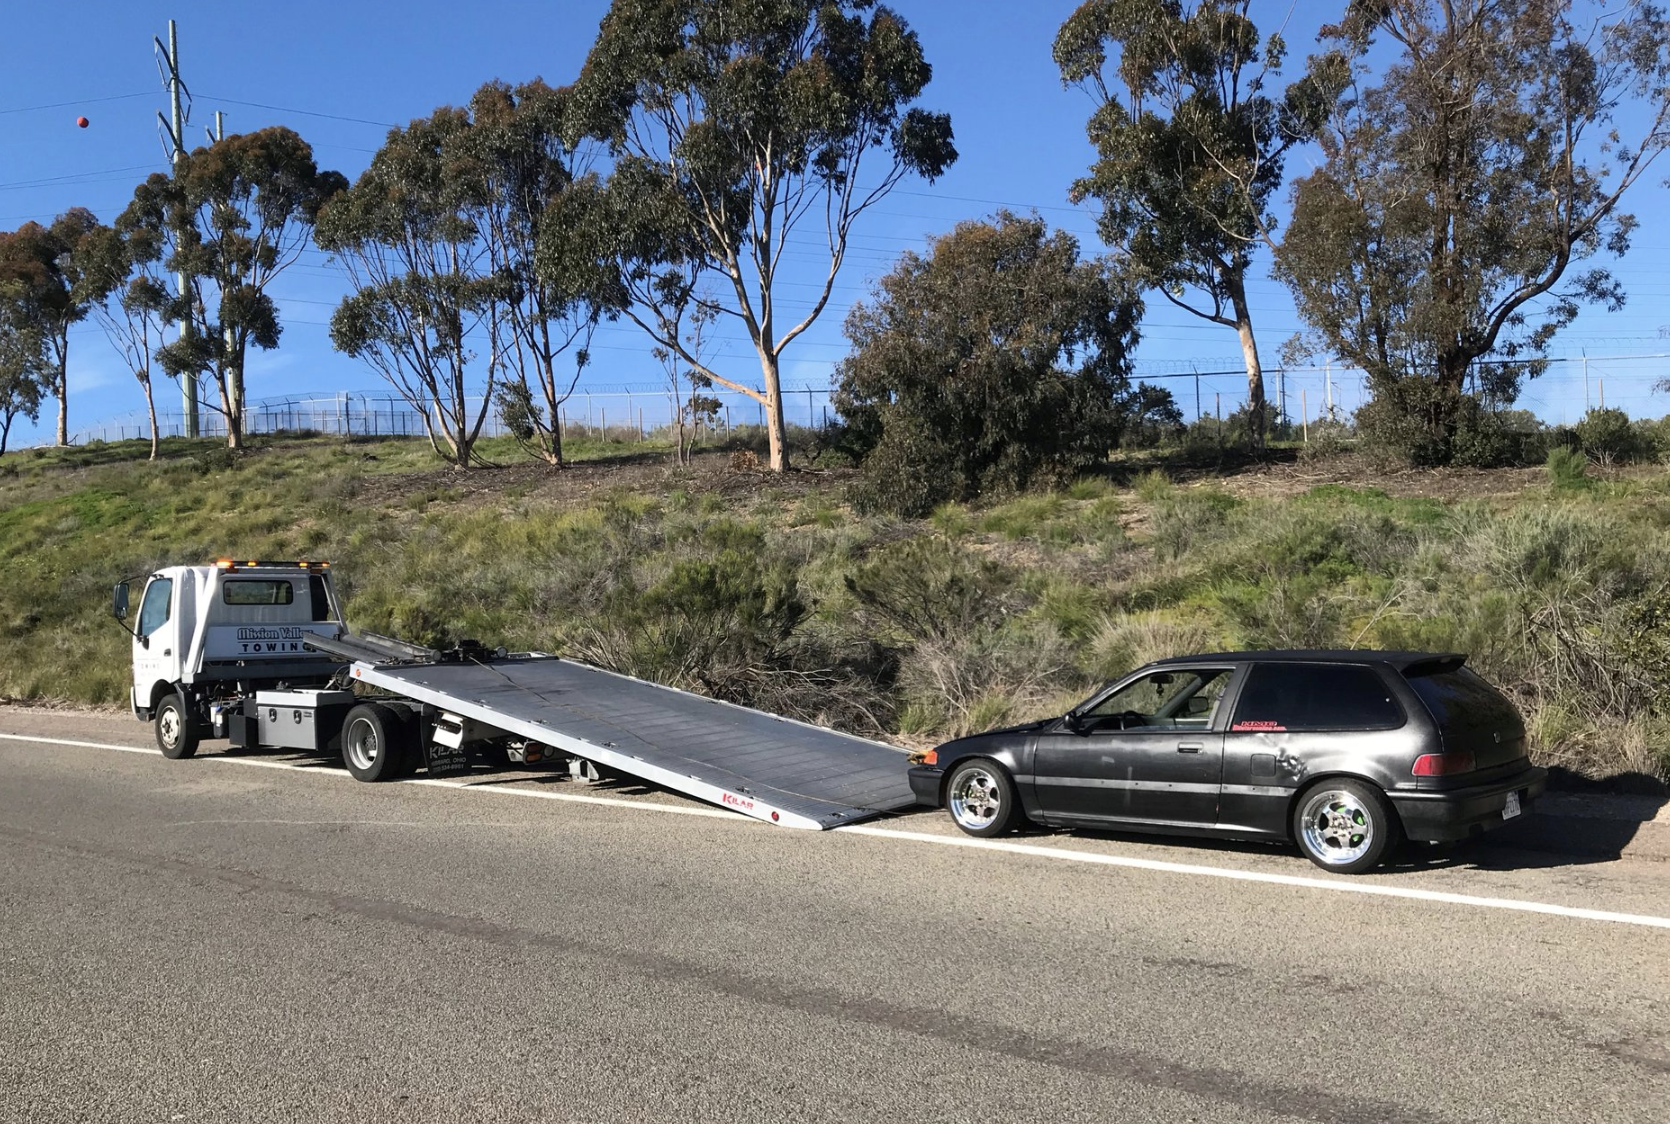 When you need Roadside Assistance in San Diego